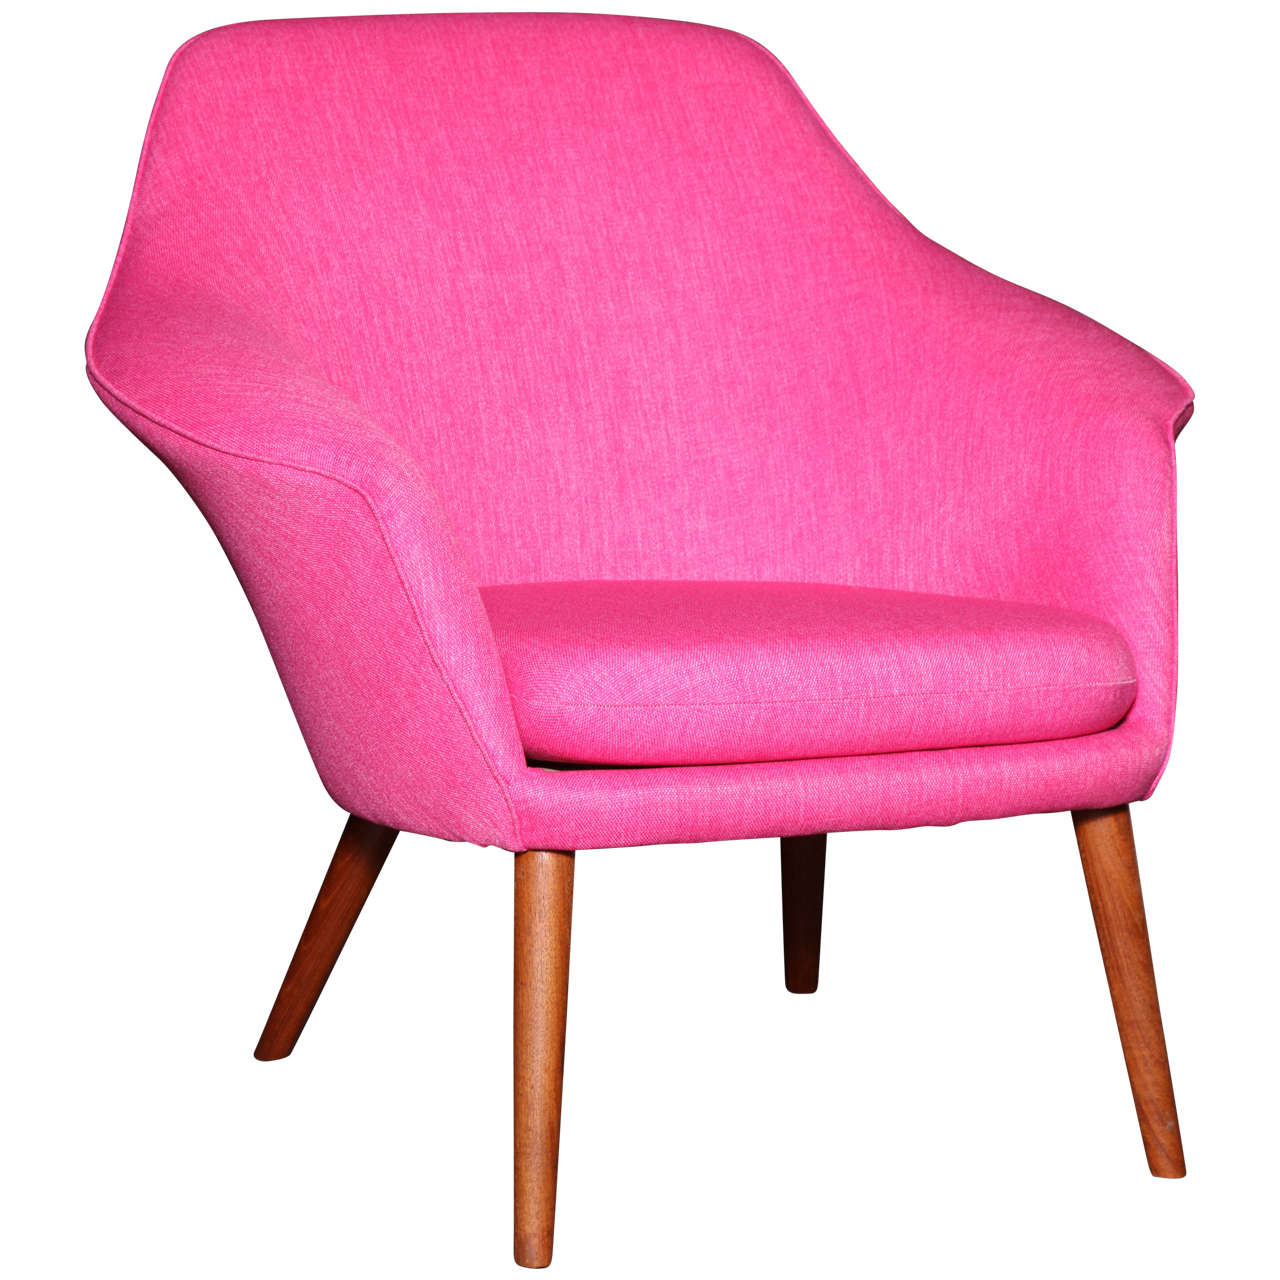 Pink Shell or Womb Chair by Hans Olsen 1